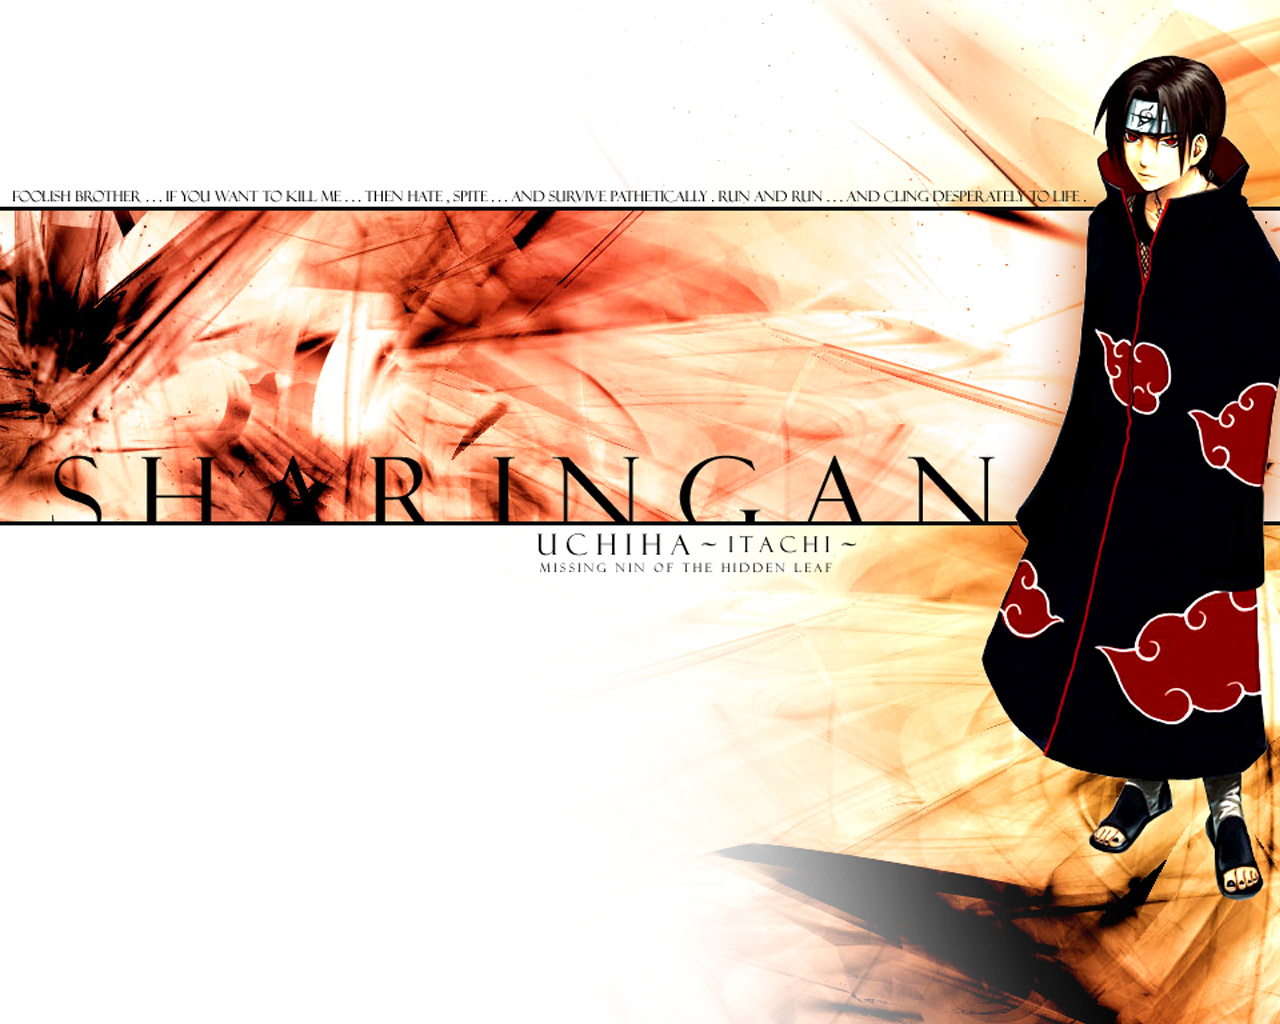 Wallpaper Hd Itachi Uchiha Download Wallpaper 1280x1024